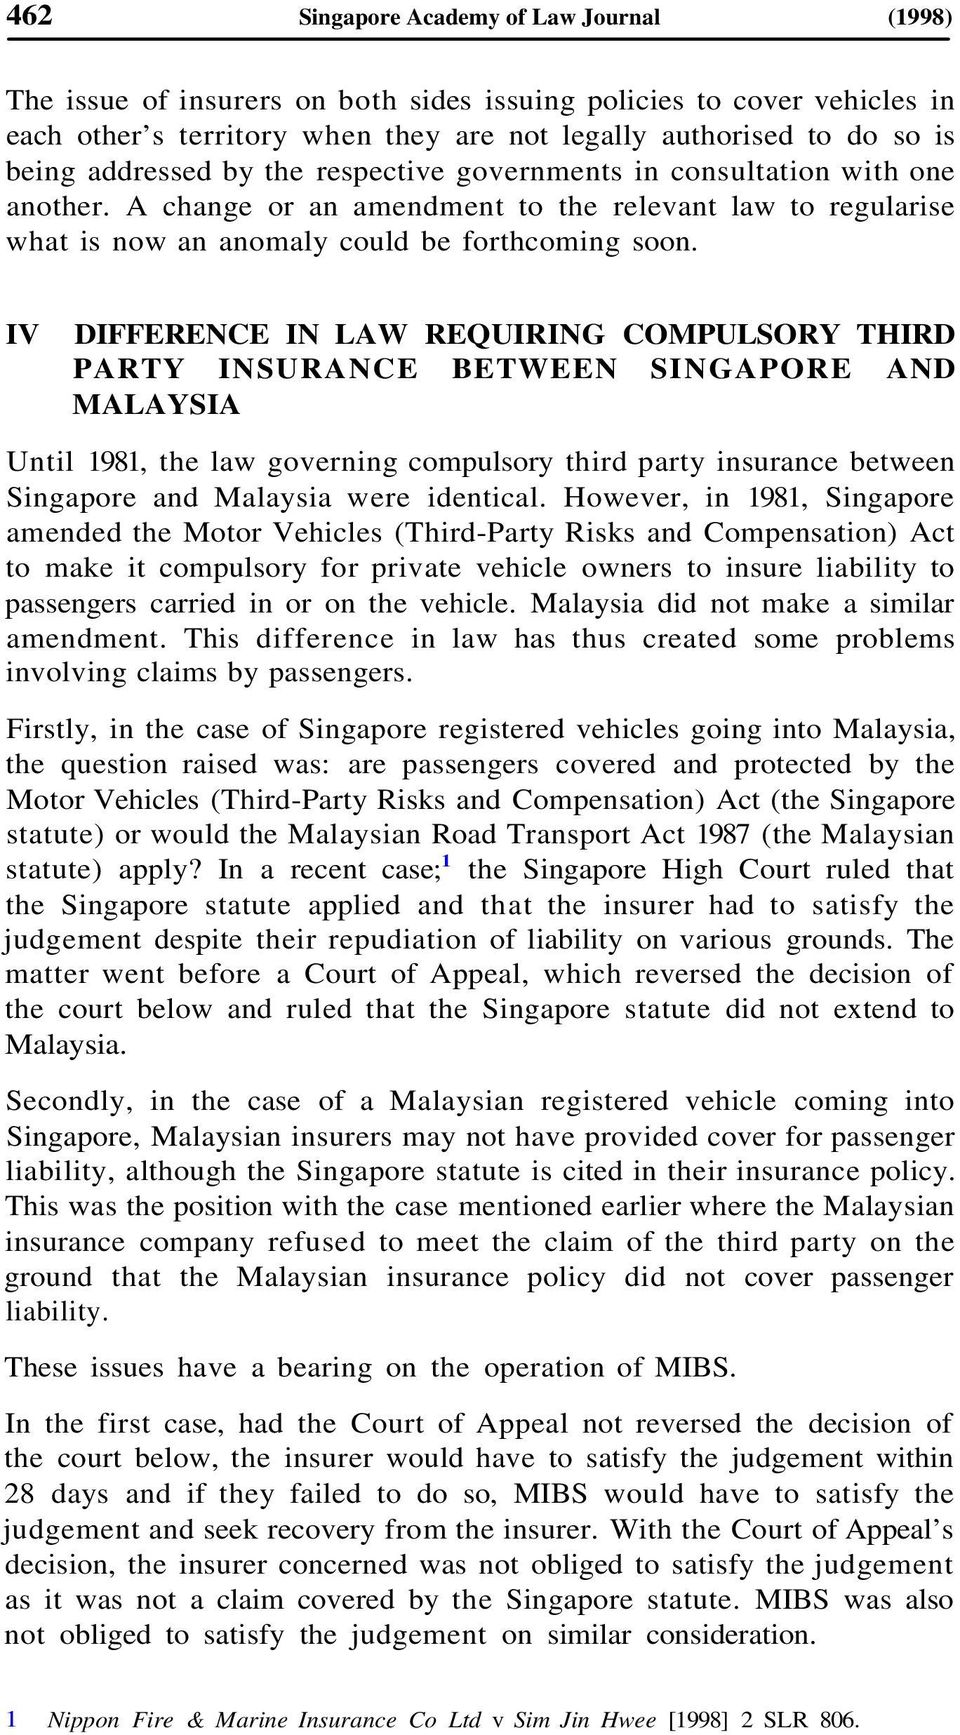 IV DIFFERENCE IN LAW REQUIRING COMPULSORY THIRD PARTY INSURANCE BETWEEN SINGAPORE AND MALAYSIA Until 1981, the law governing compulsory third party insurance between Singapore and Malaysia were